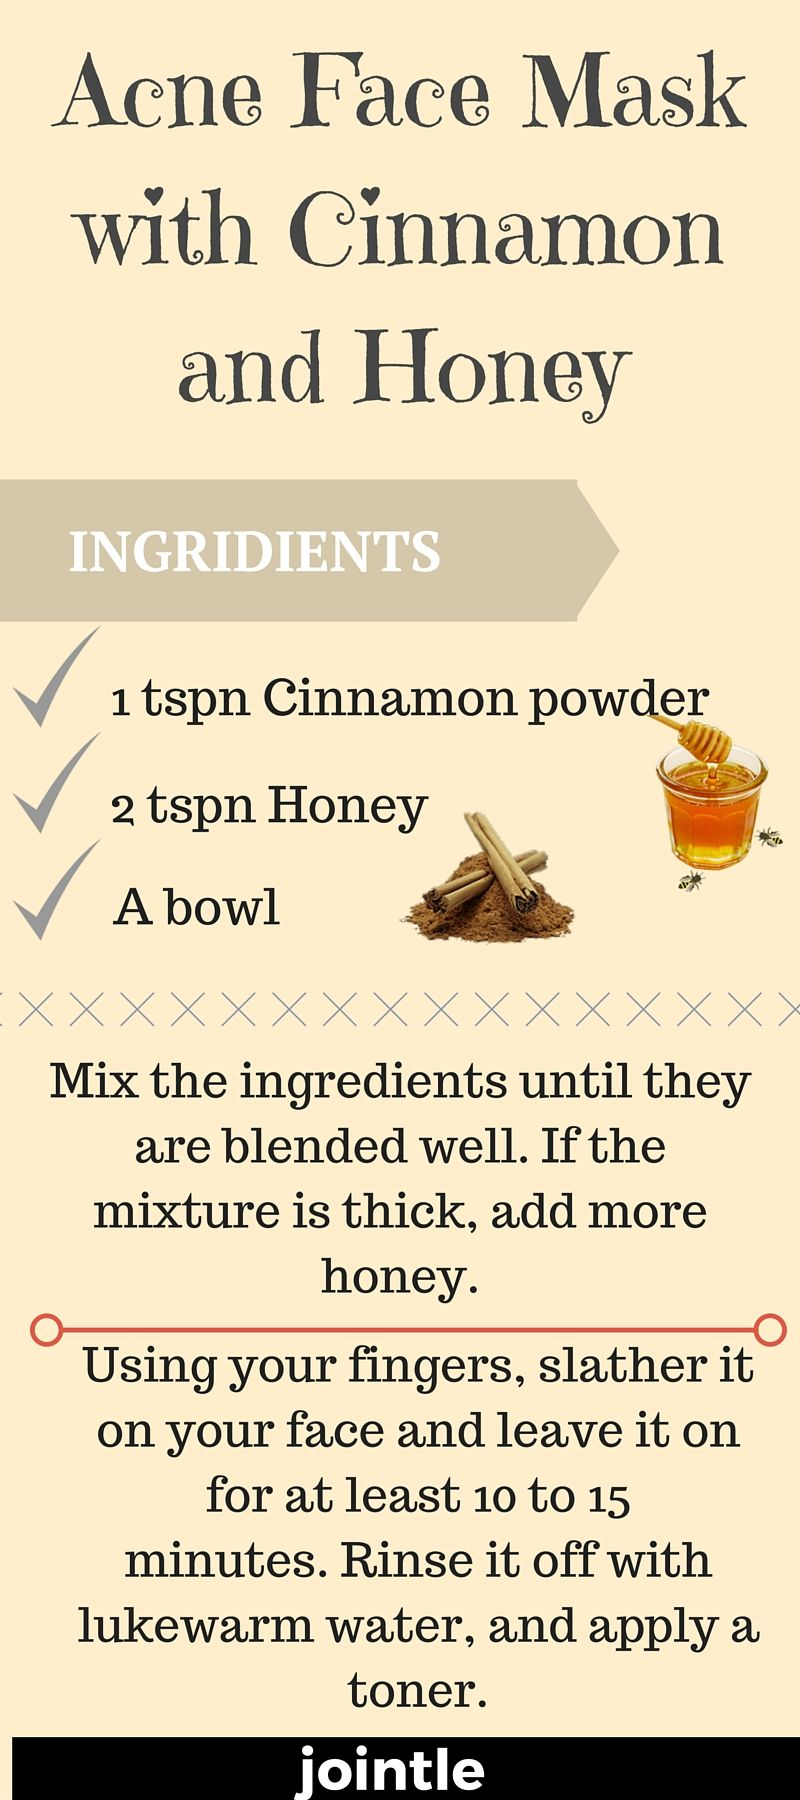 Face Mask with Cinnamon and Honey will help you to get rid